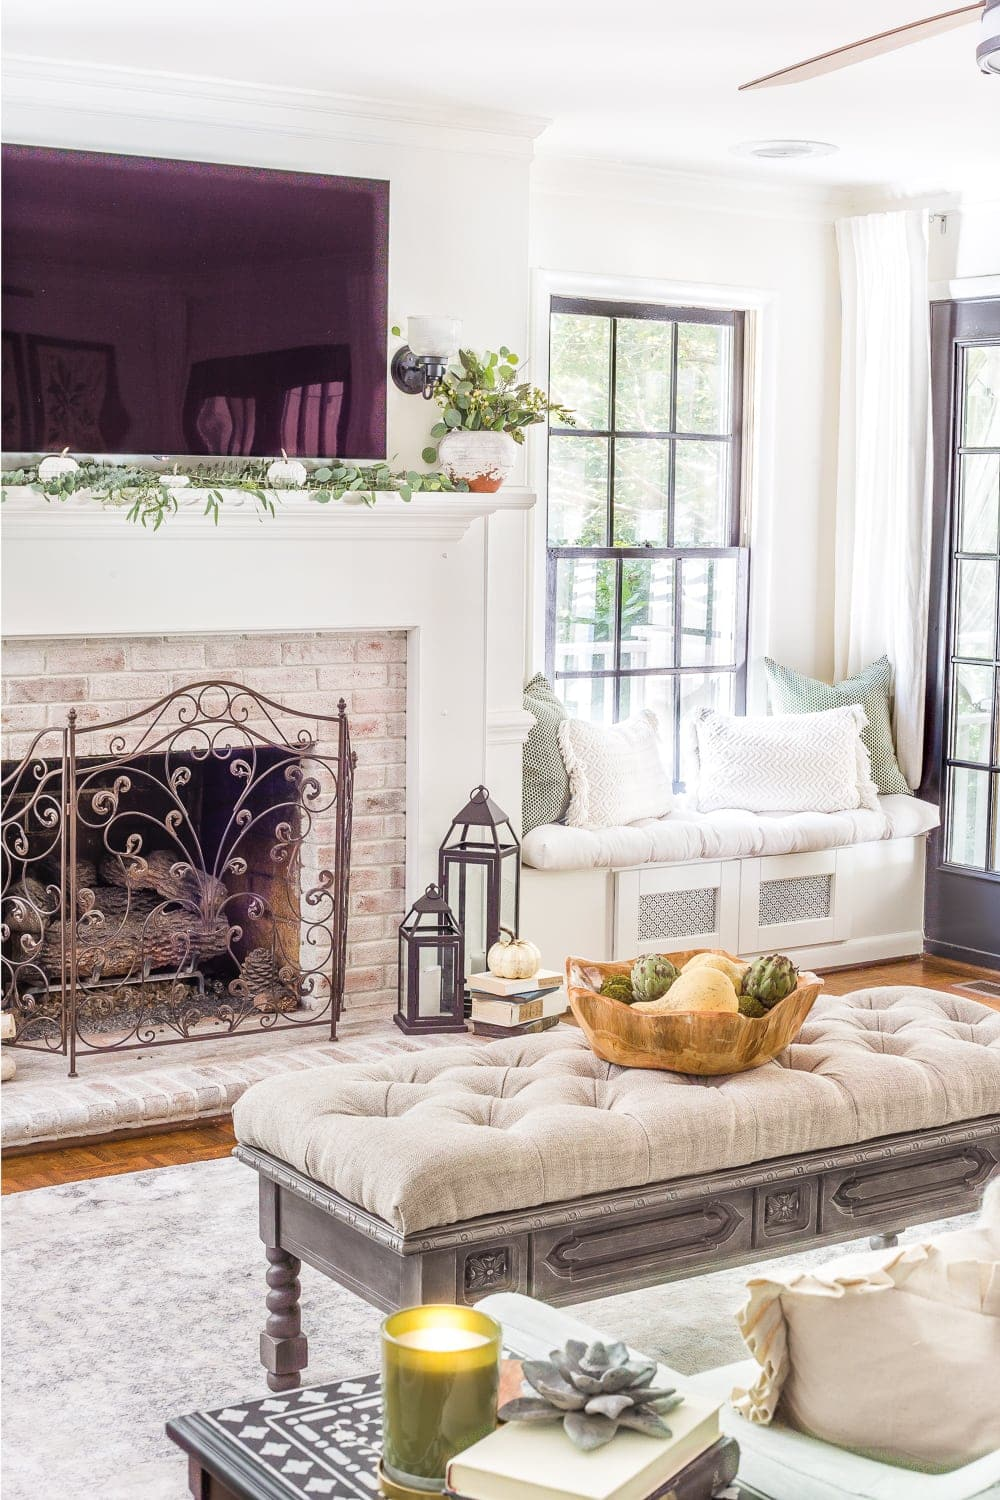 Tips for decorating a neutral fall mantel by reusing classic accents and simple color palette around the obstacle of a TV + 29 more fall mantel decor ideas. #neutralfalldecor #neutralfallmantel #fallmantel #falldecor #neutralfall #falllivingroom #autumndecor #neutralautumn